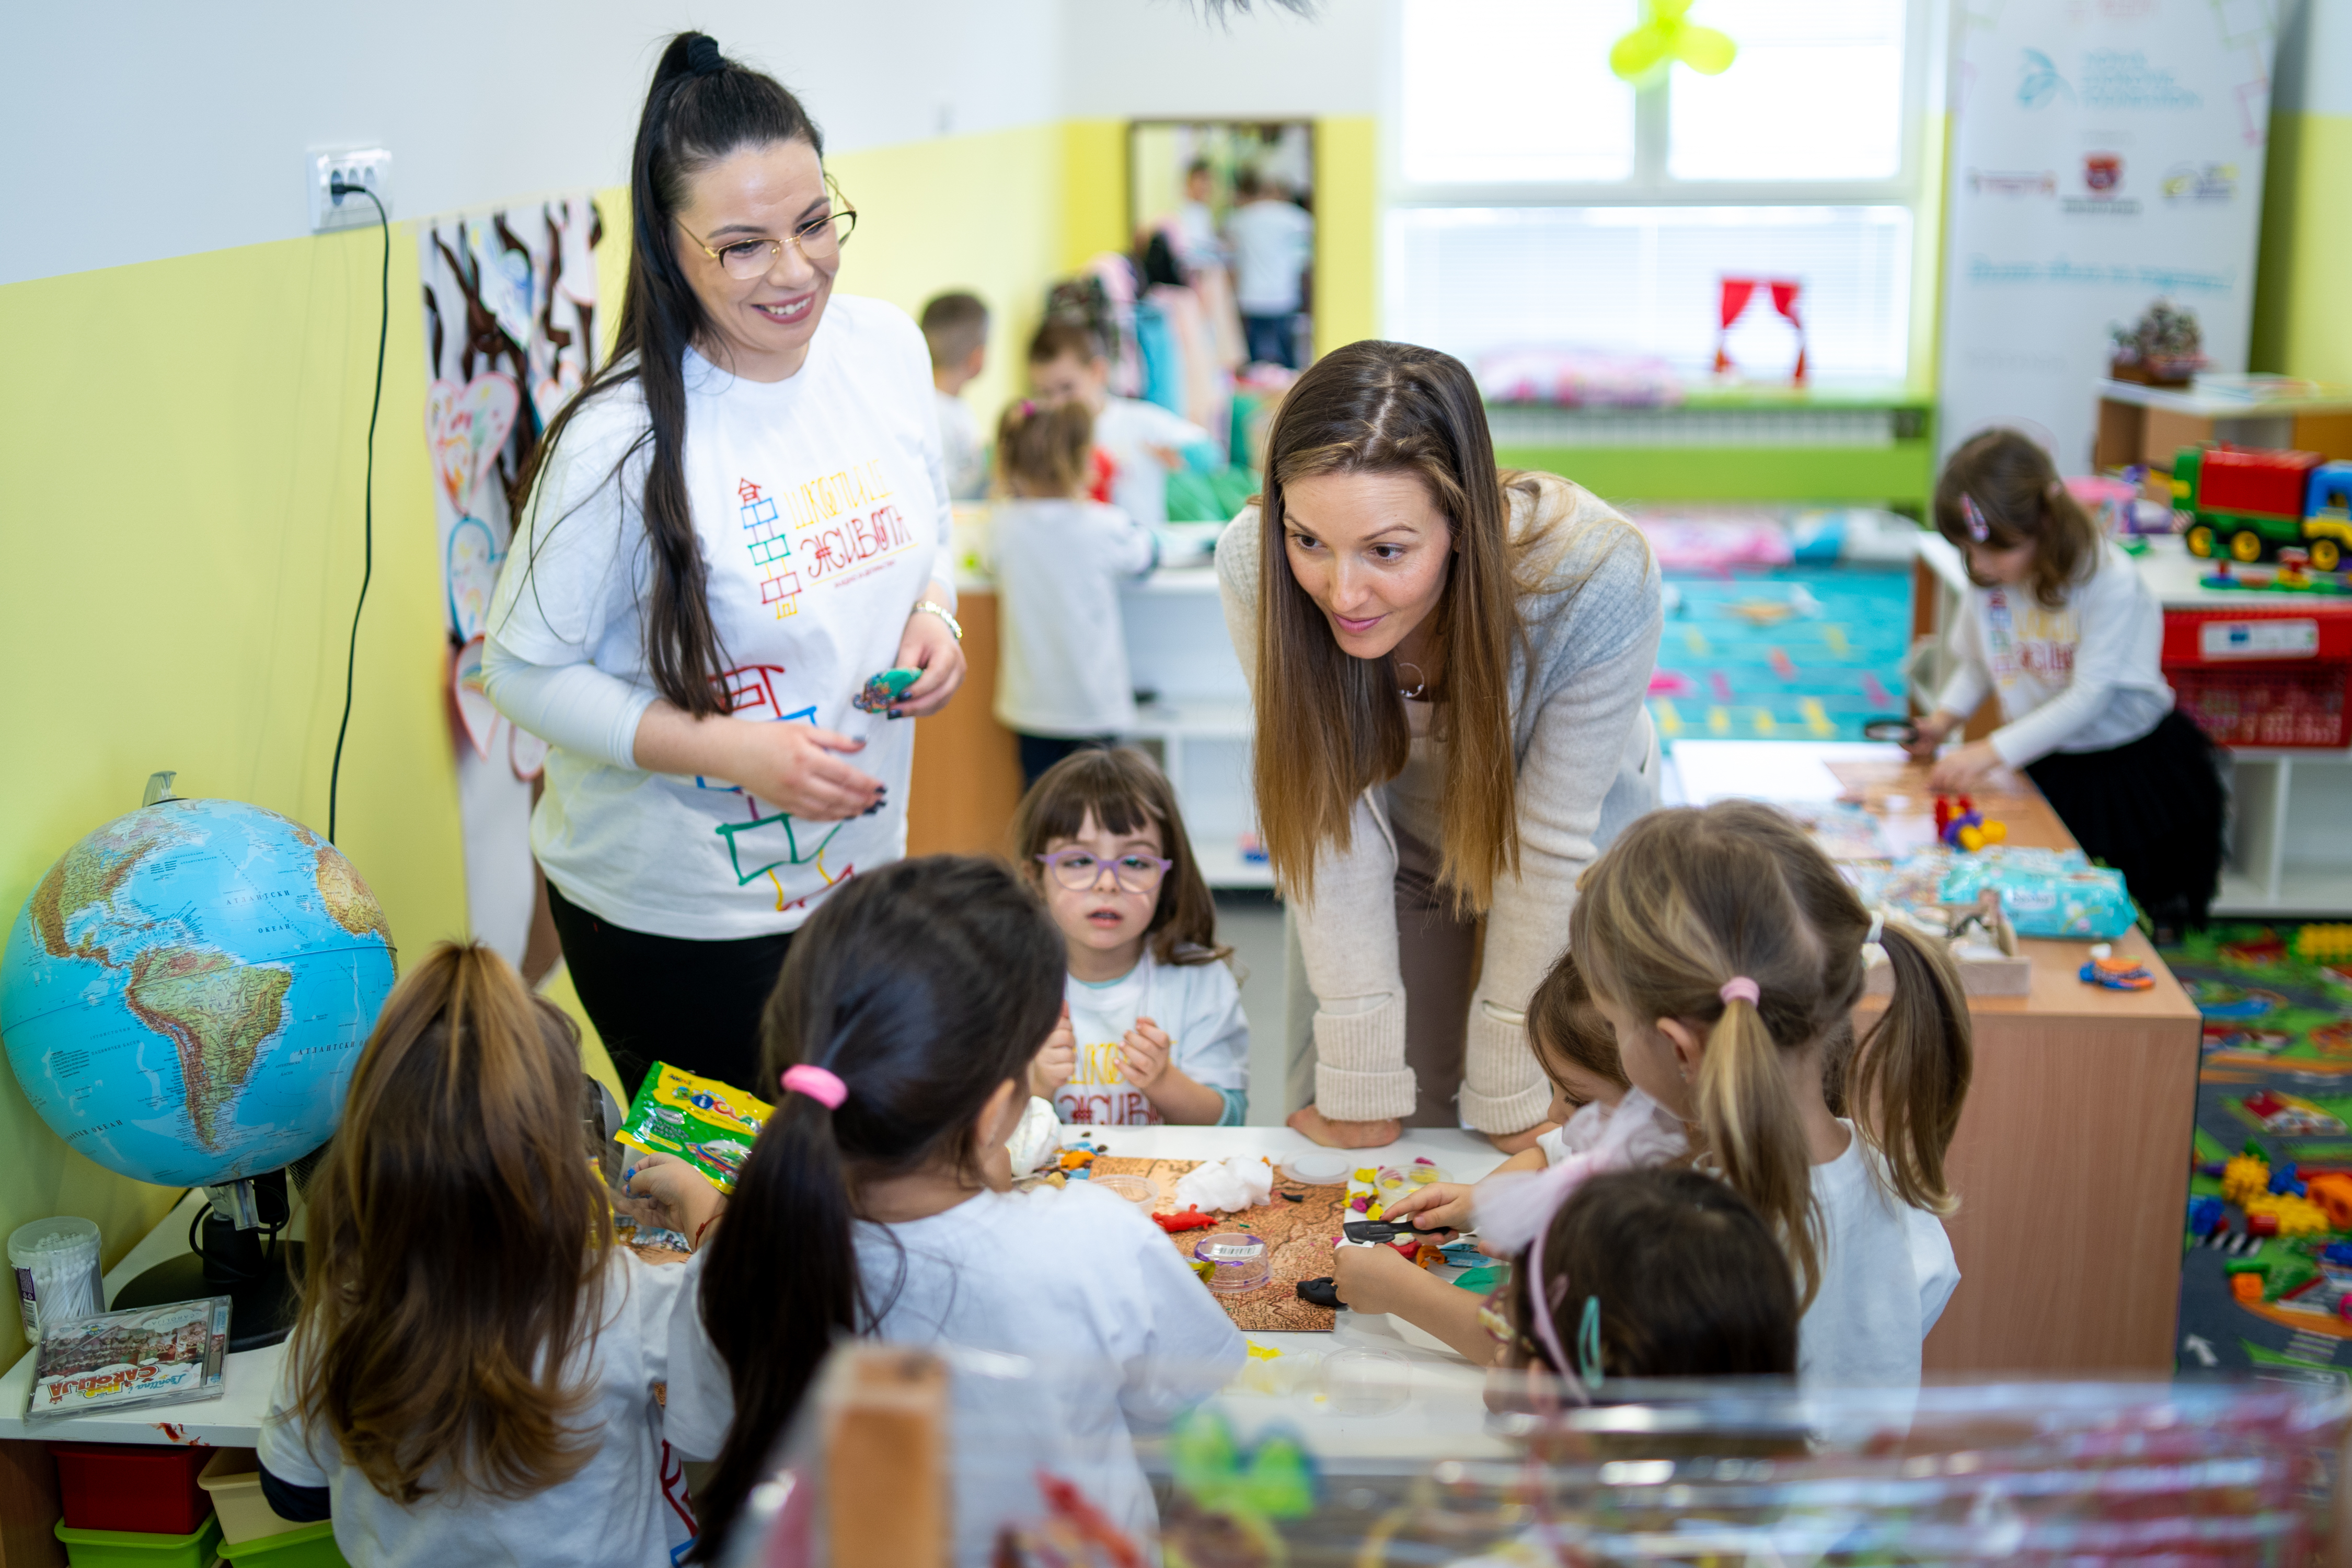 The job of a preschool teacher involves four elements of love: care, responsibility, respect and bond.